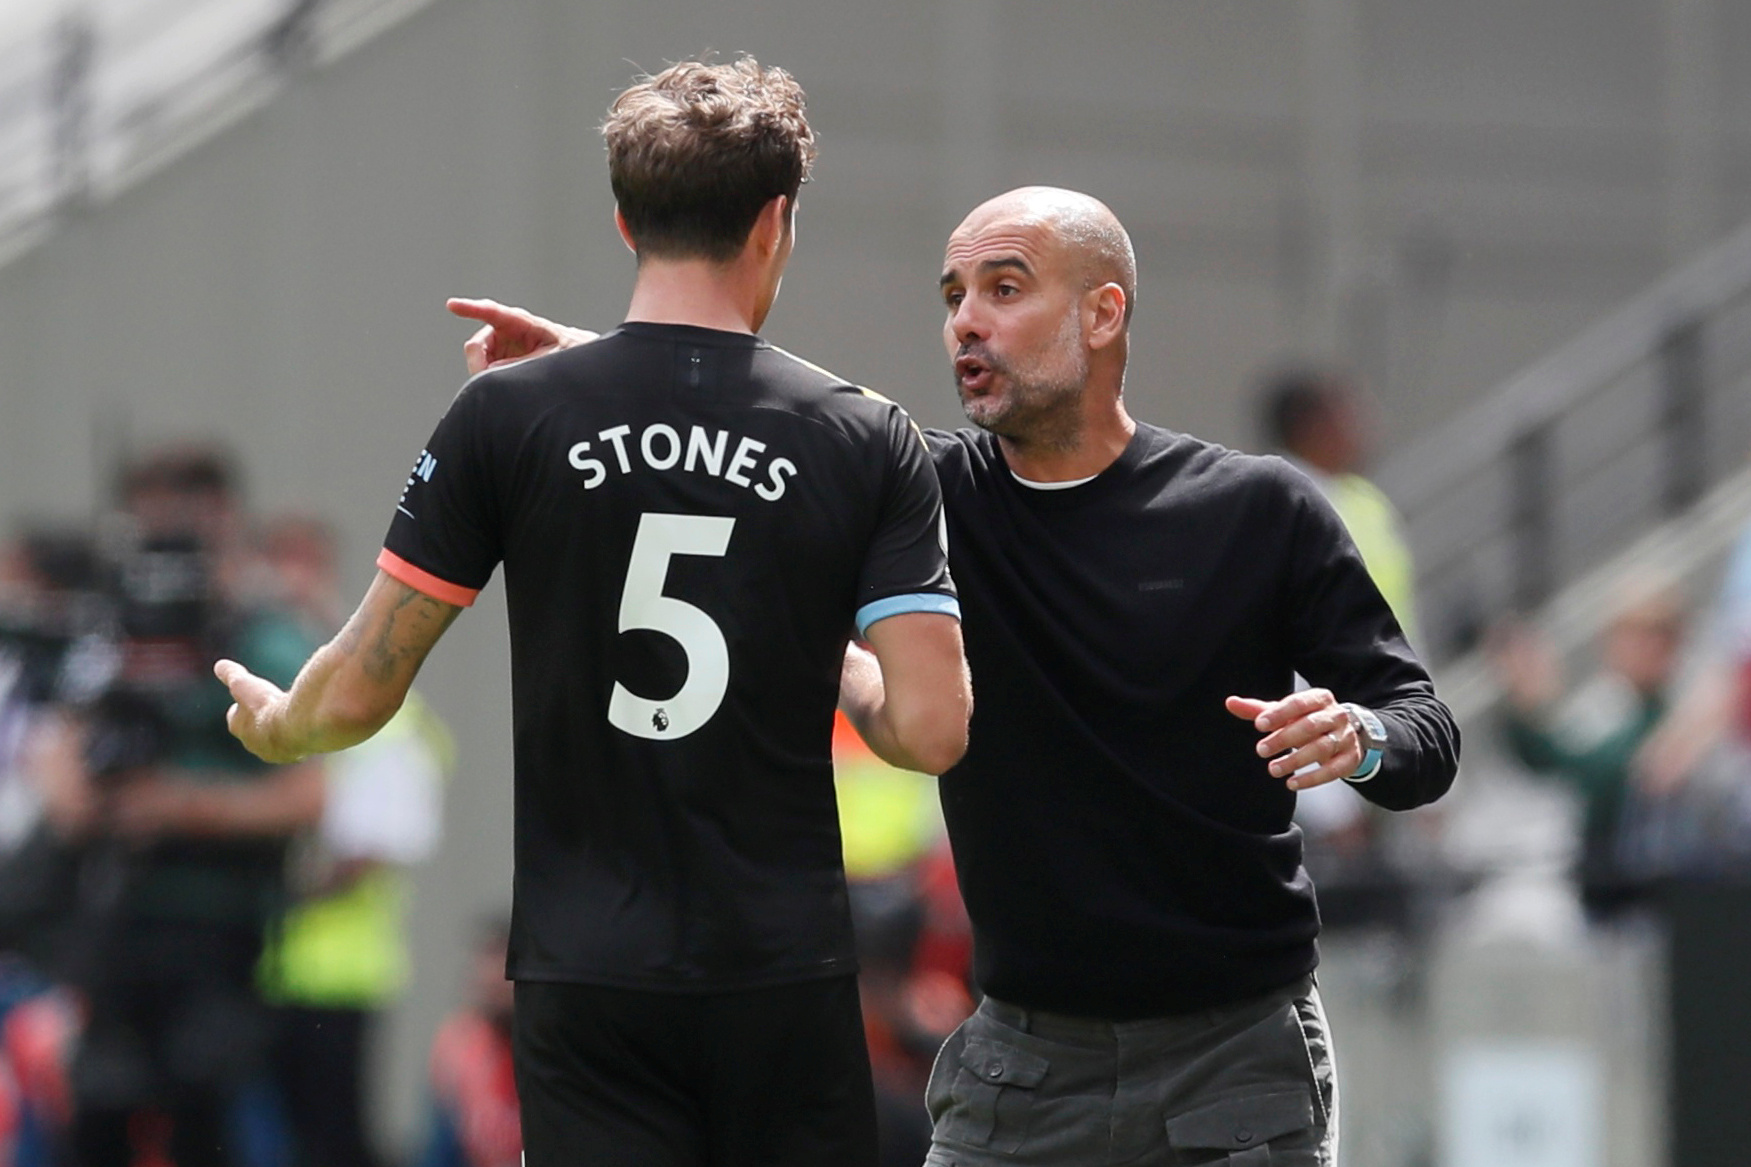 Manchester City will be without John Stones for Watford's visit on Saturday